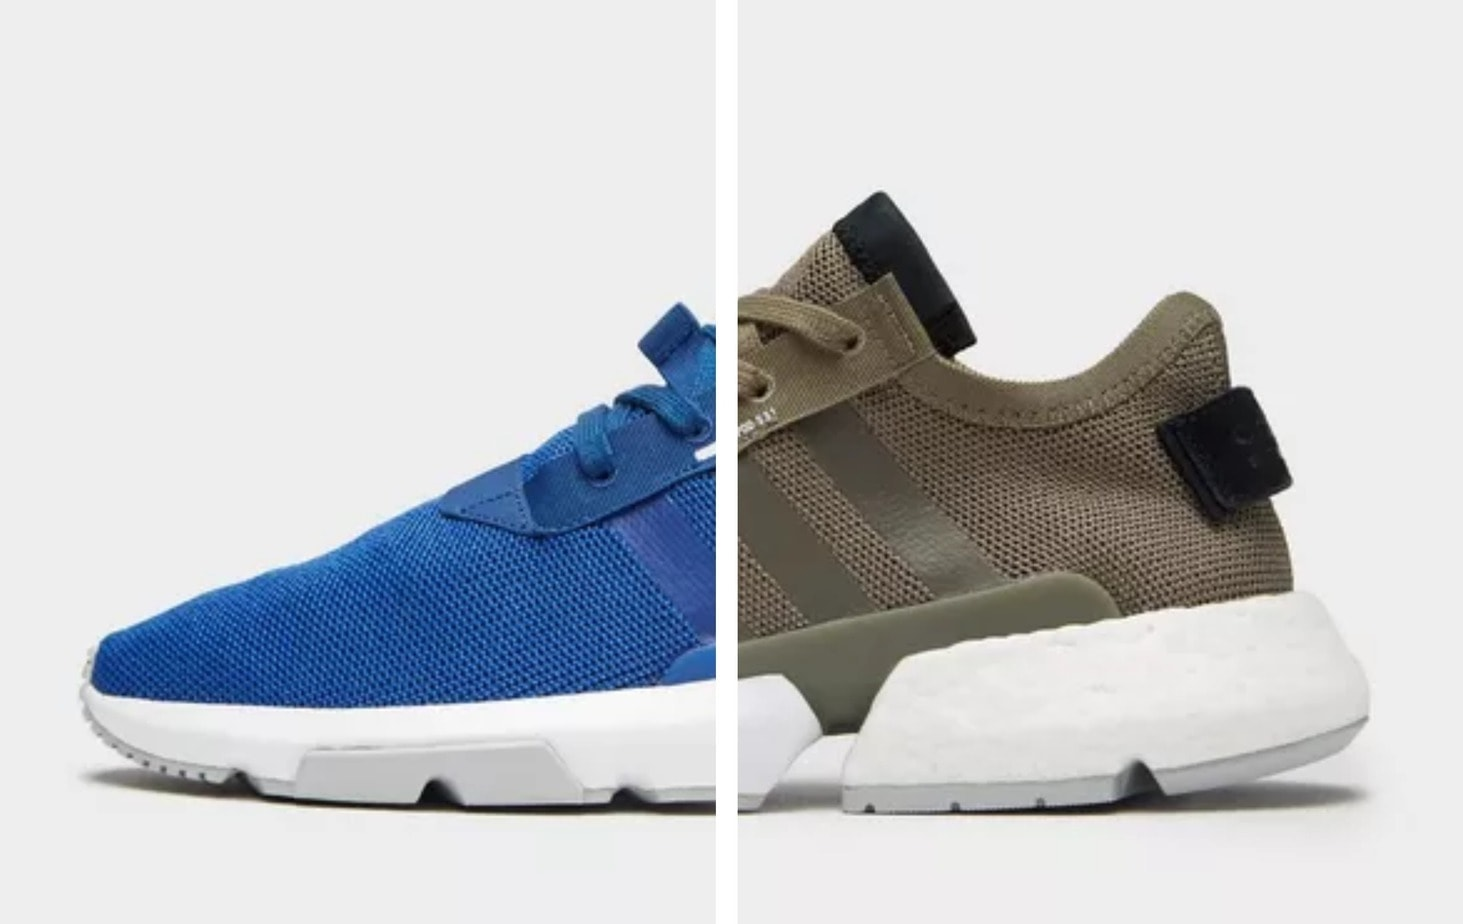 the latest e0a7f 7f9a7 JD Sports Drops Two Exclusive adidas POD System 3.1 Colorways